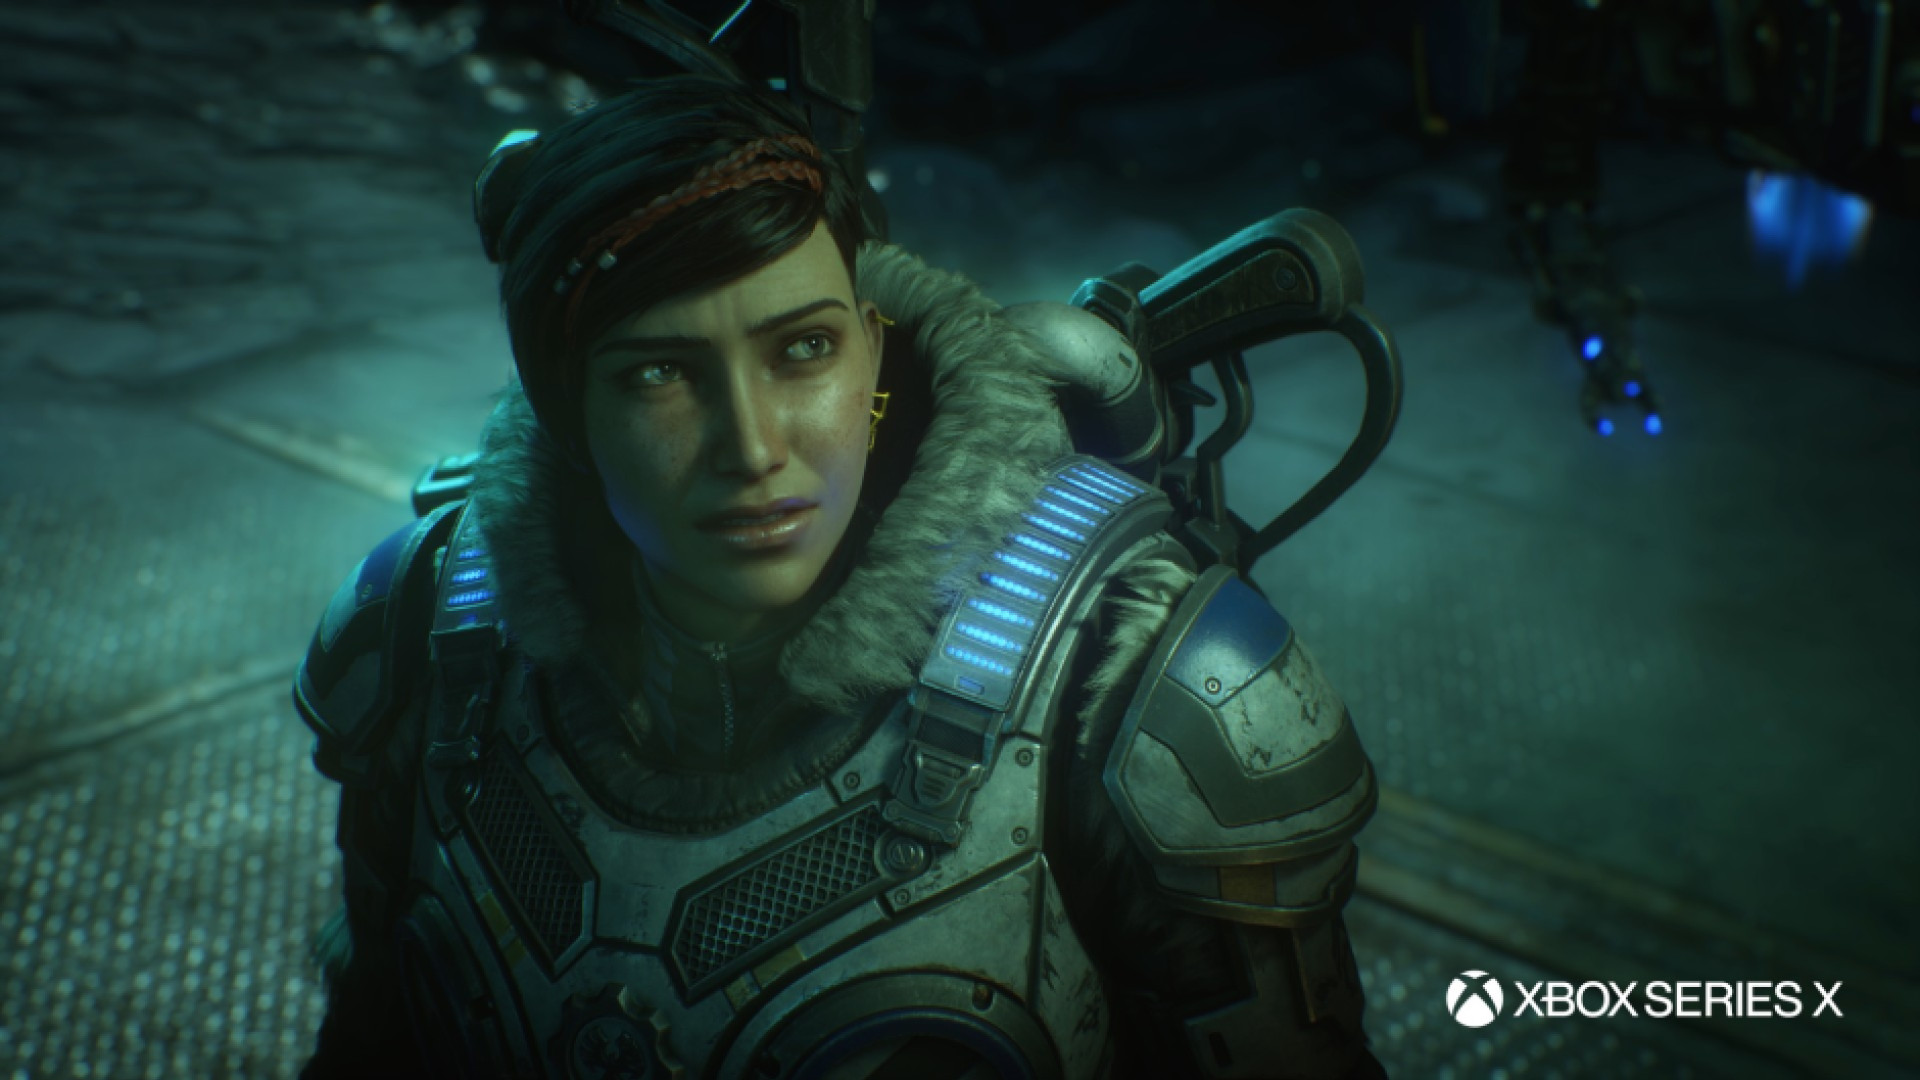 Xbox Series X and Xbox Series S Now Available Worldwide Gears5Image1.jpg